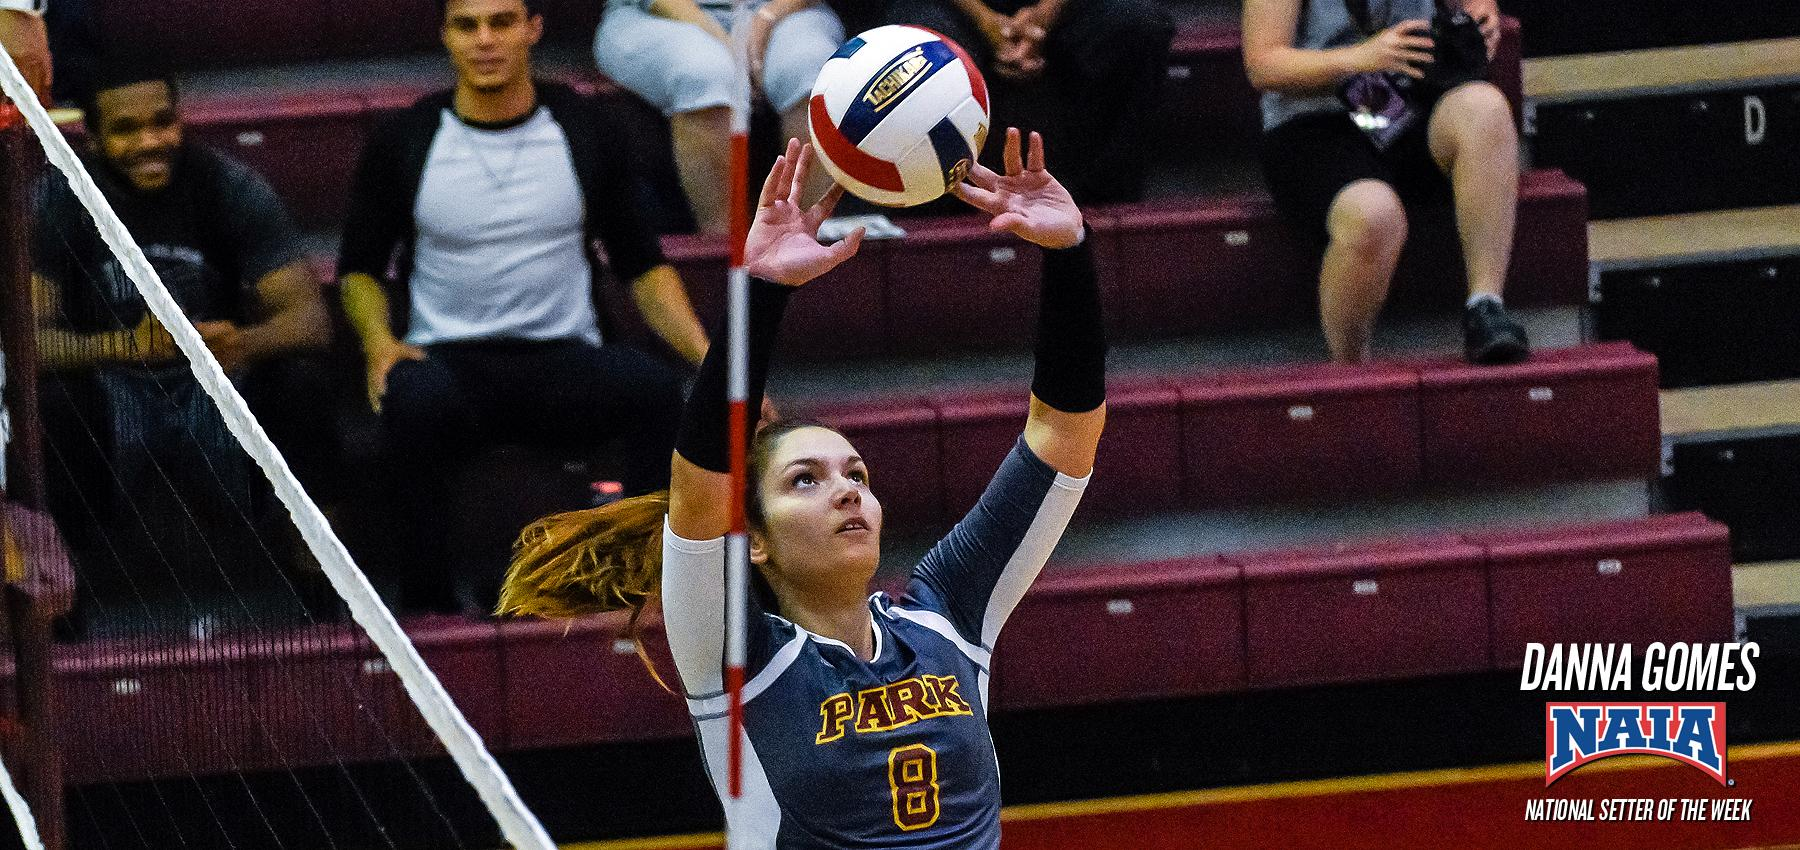 Danna Gomes is the NAIA Setter of the Week after 13 assists per set in a 4-0 week for No. 4 Park.